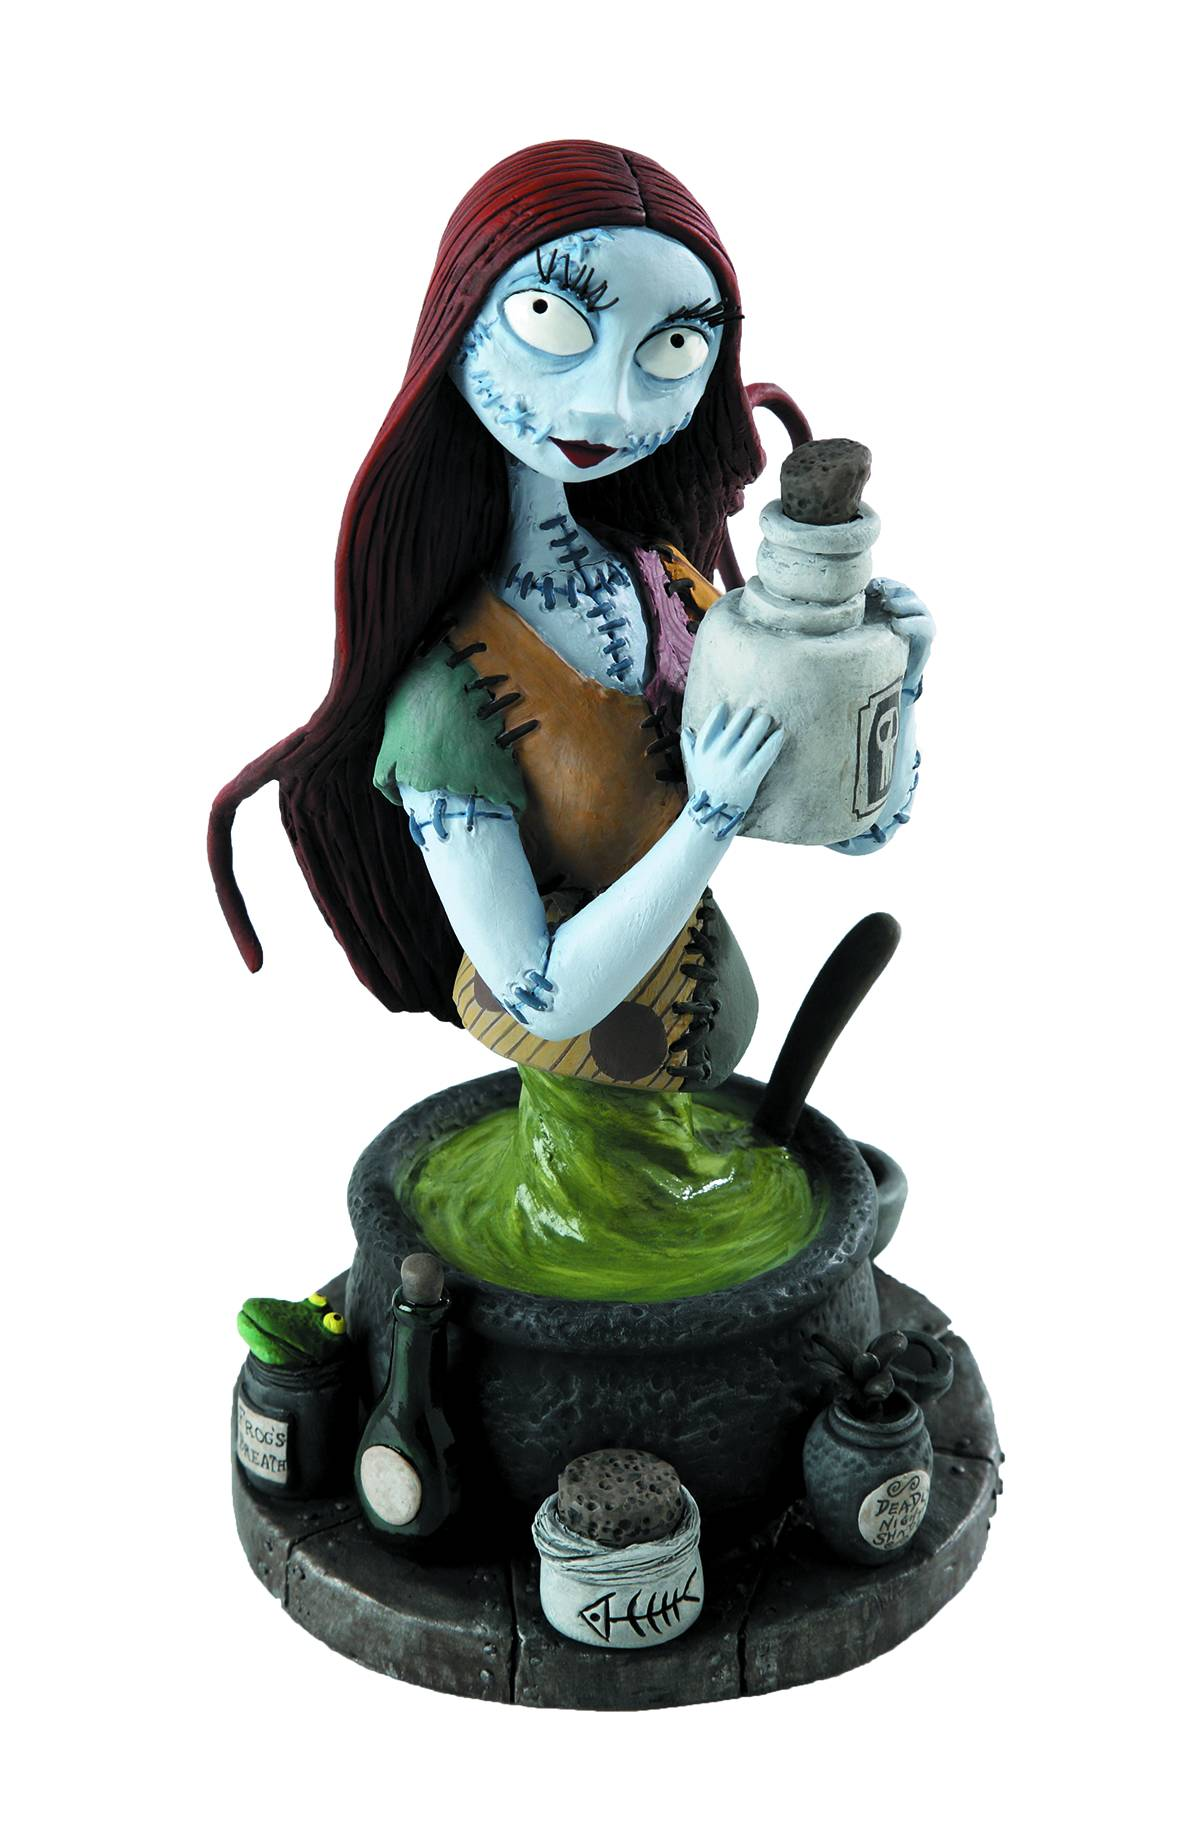 Nightmare Before Christmas Statues and Busts from This Our Town of ...